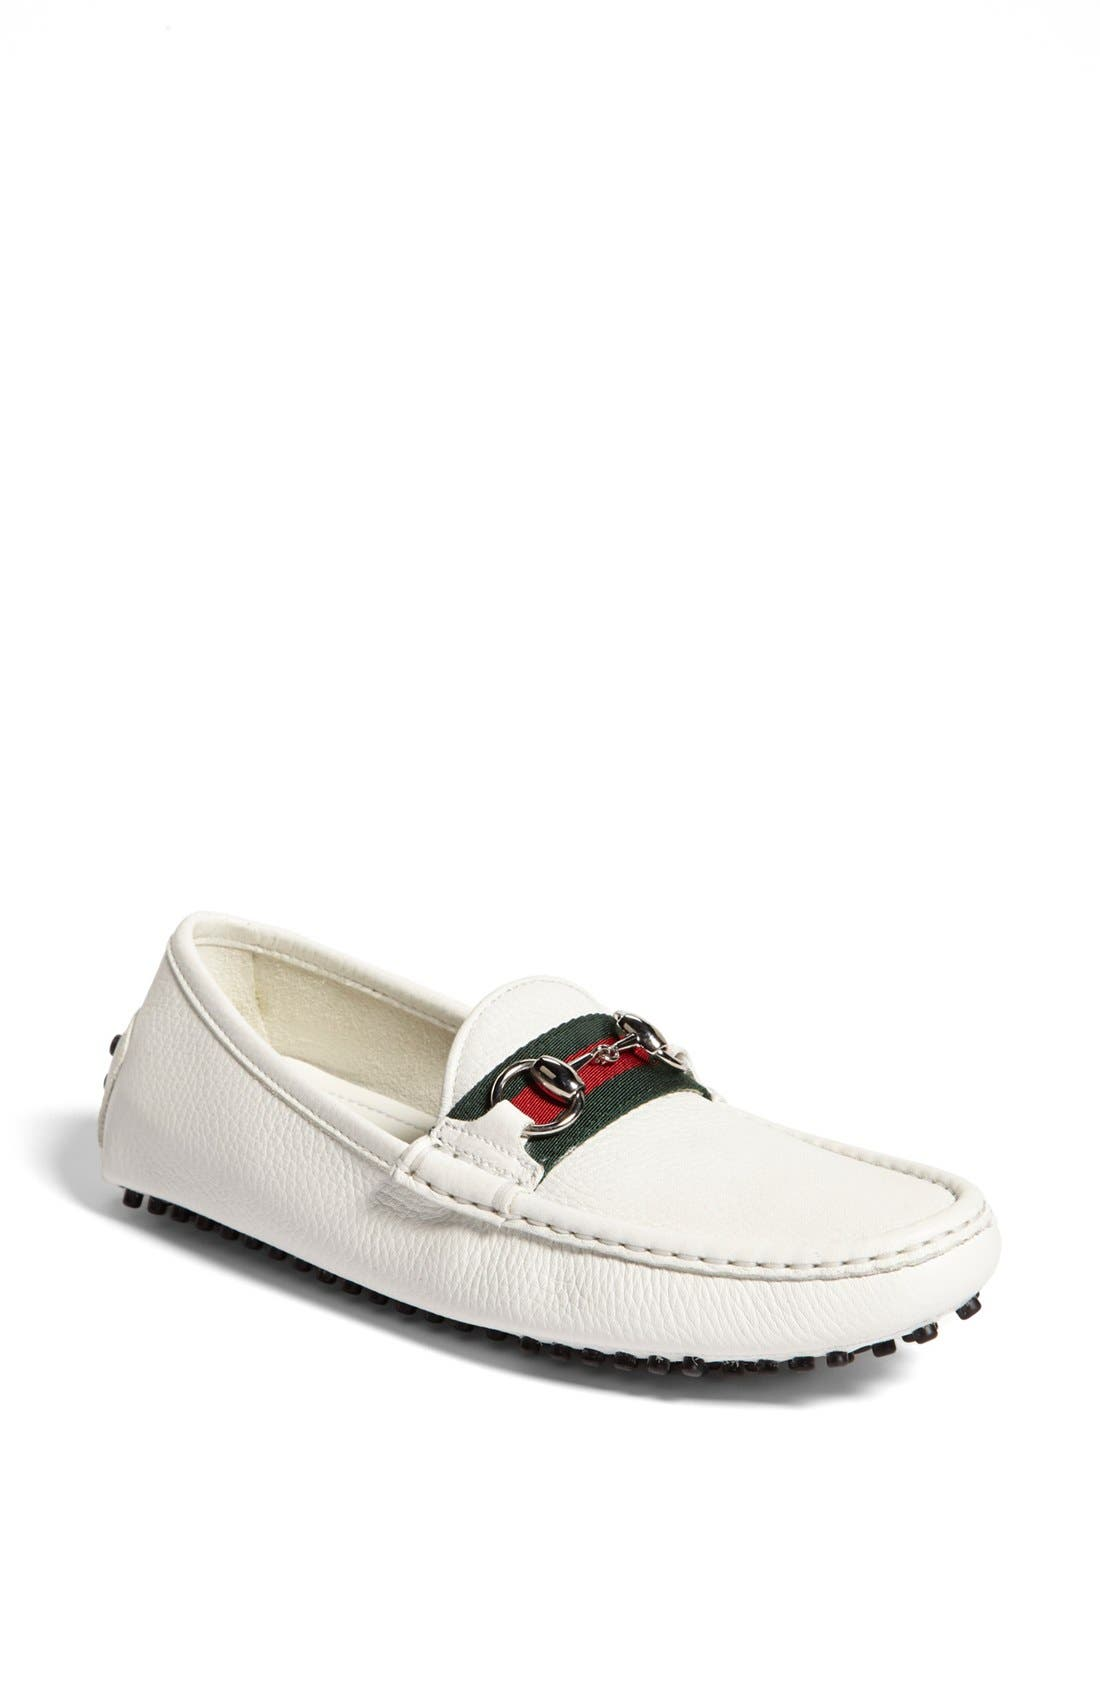 Damo Driving Loafer,                             Main thumbnail 2, color,